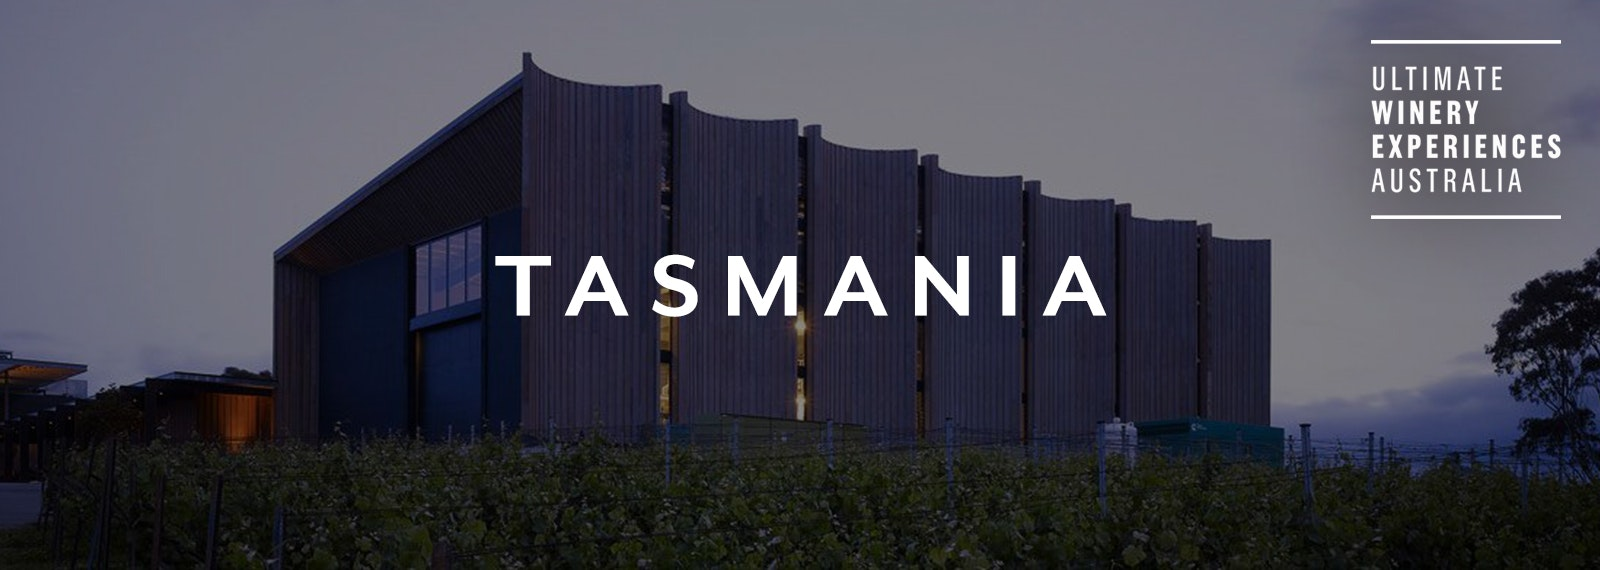 Ultimate Winery Experiences Australia - Tasmania